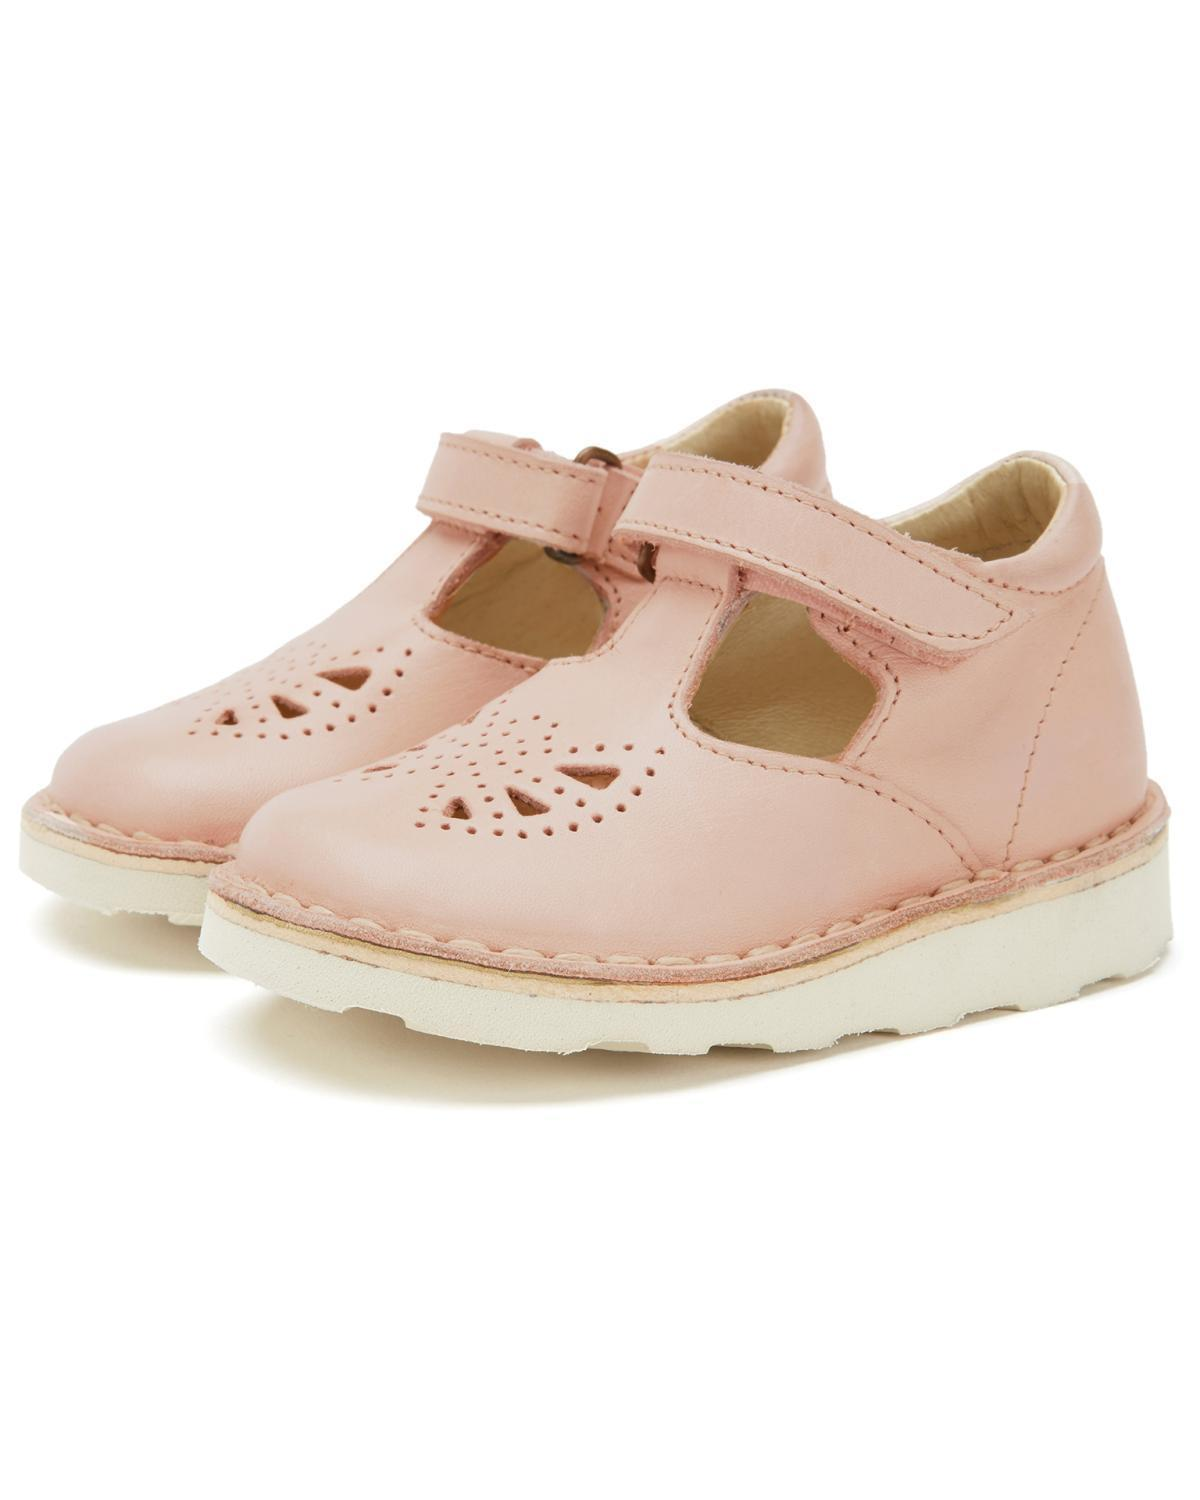 Little young soles accessories 18 poppy t-bar shoe in nude pink